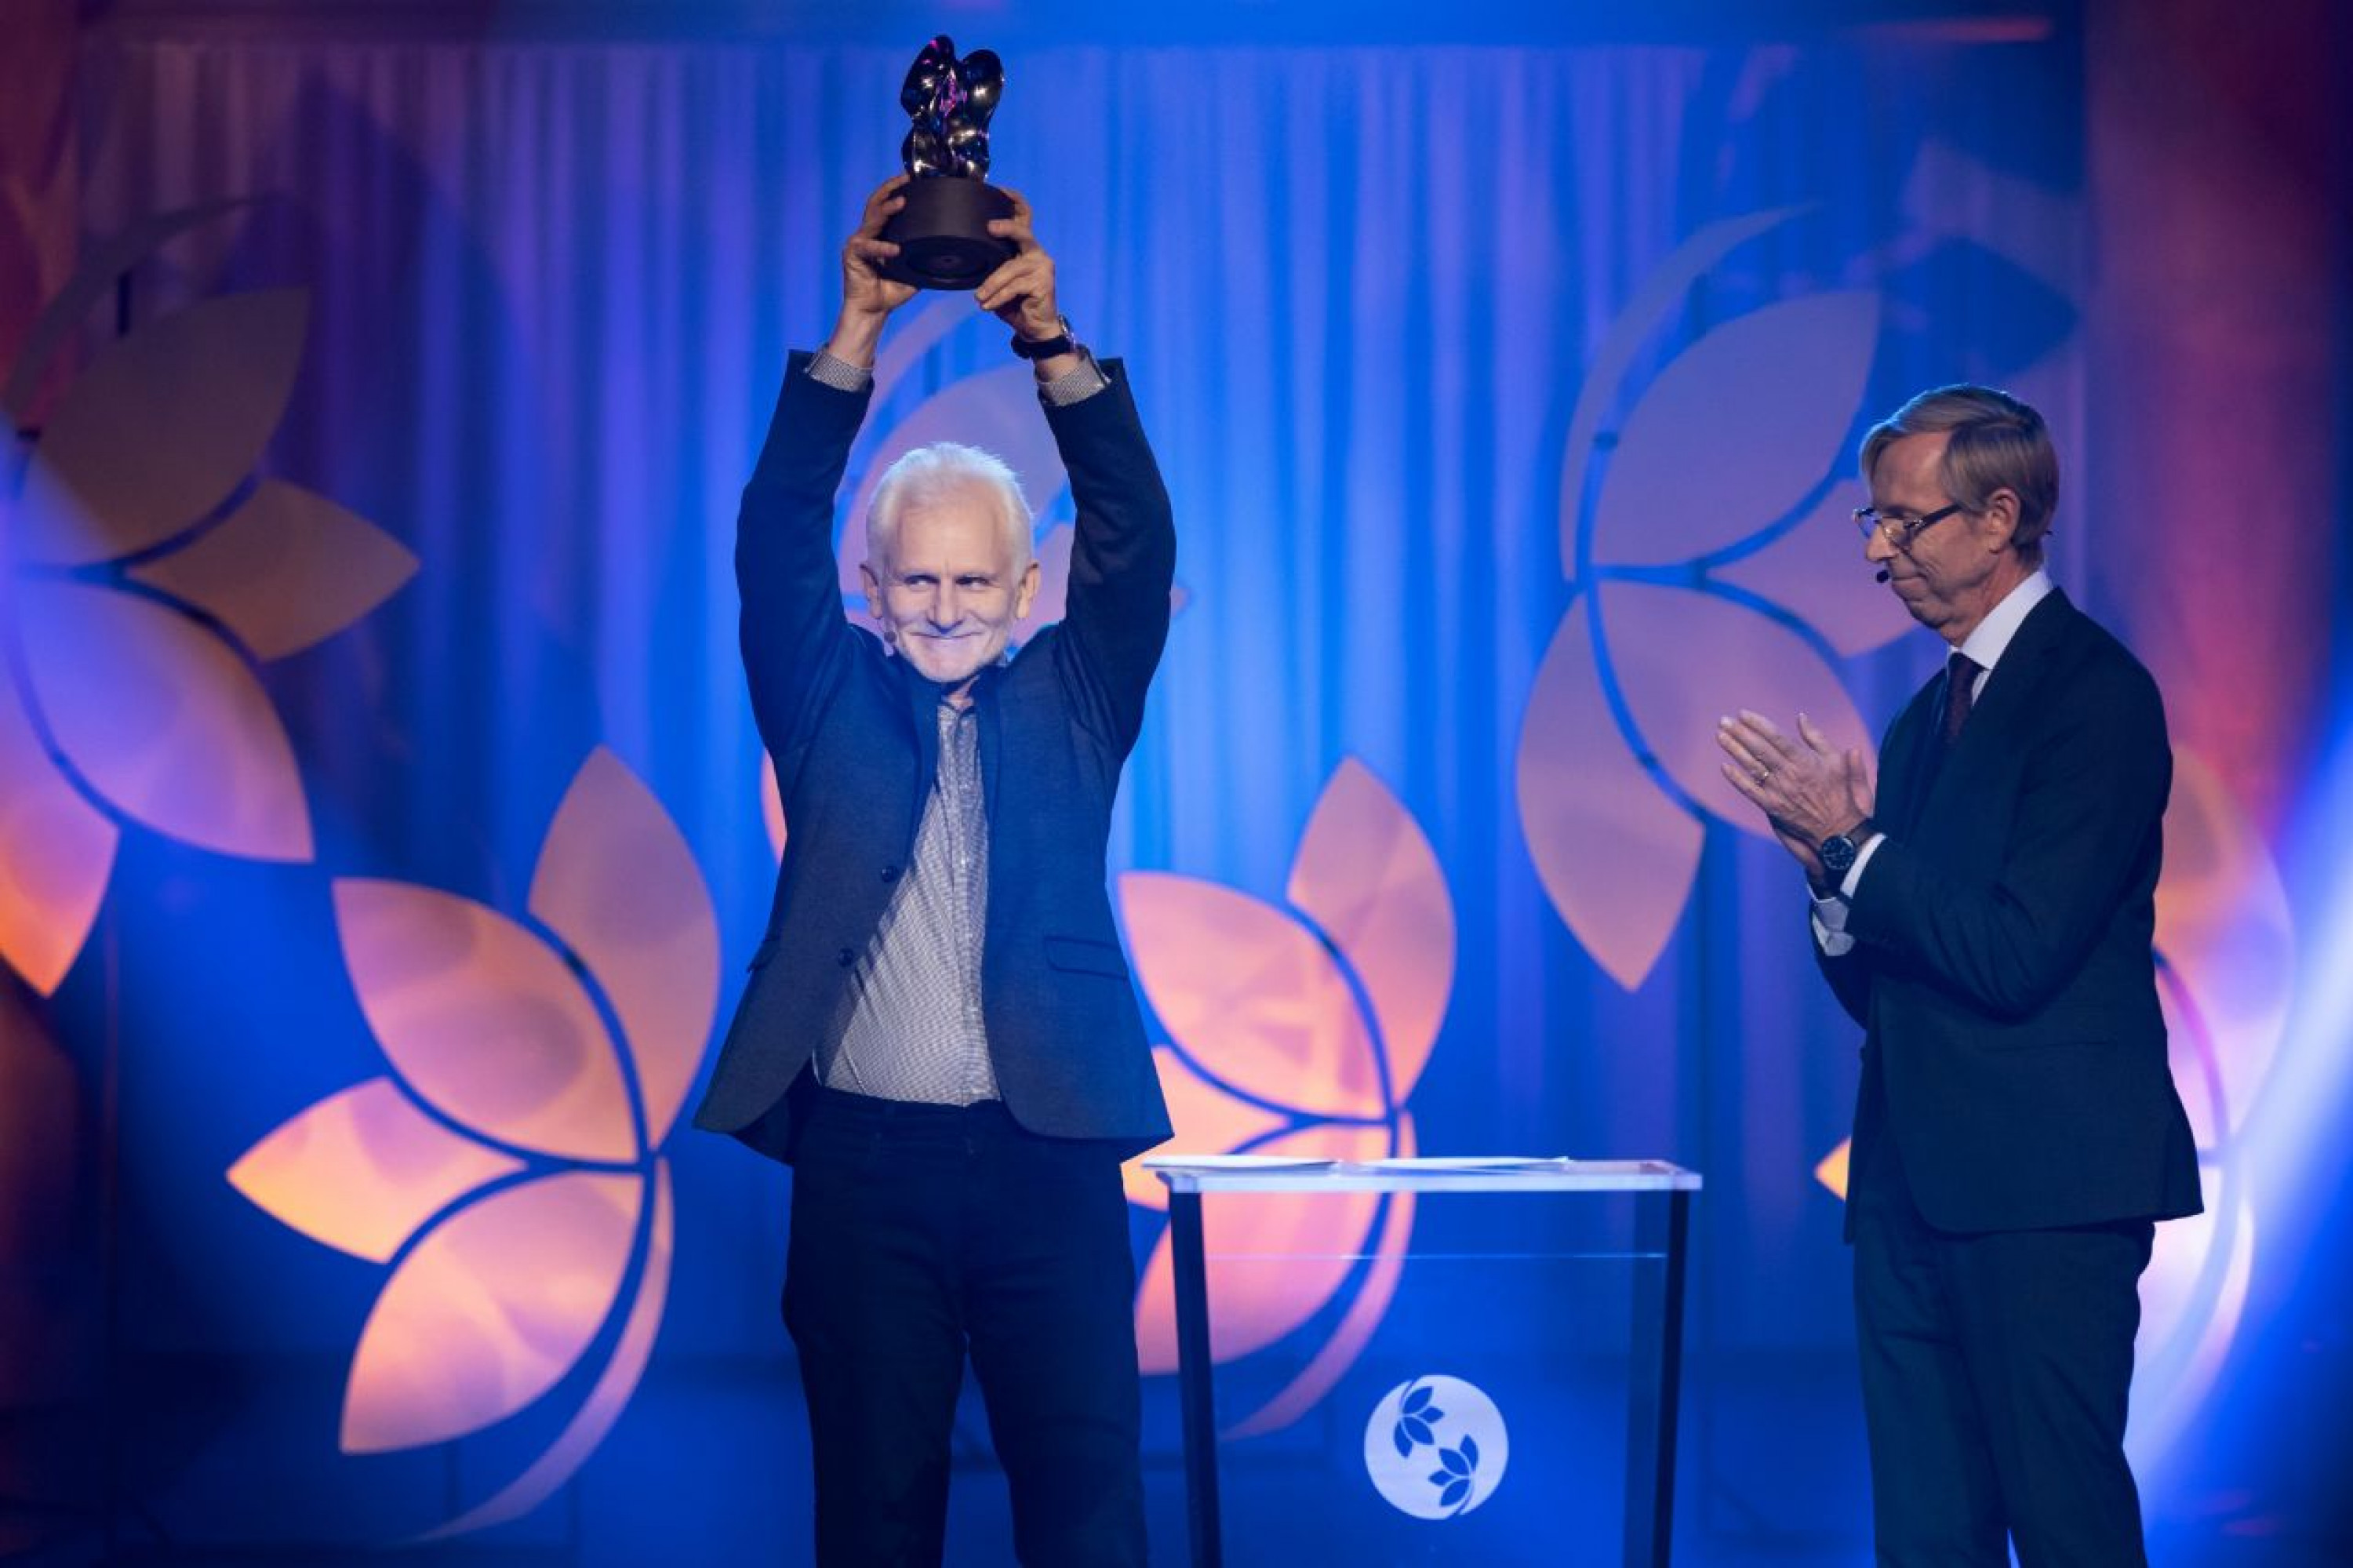 Ales Bialiatski receiving the Right Livelihood Award at a ceremony in Stockholm on December 3, 2020